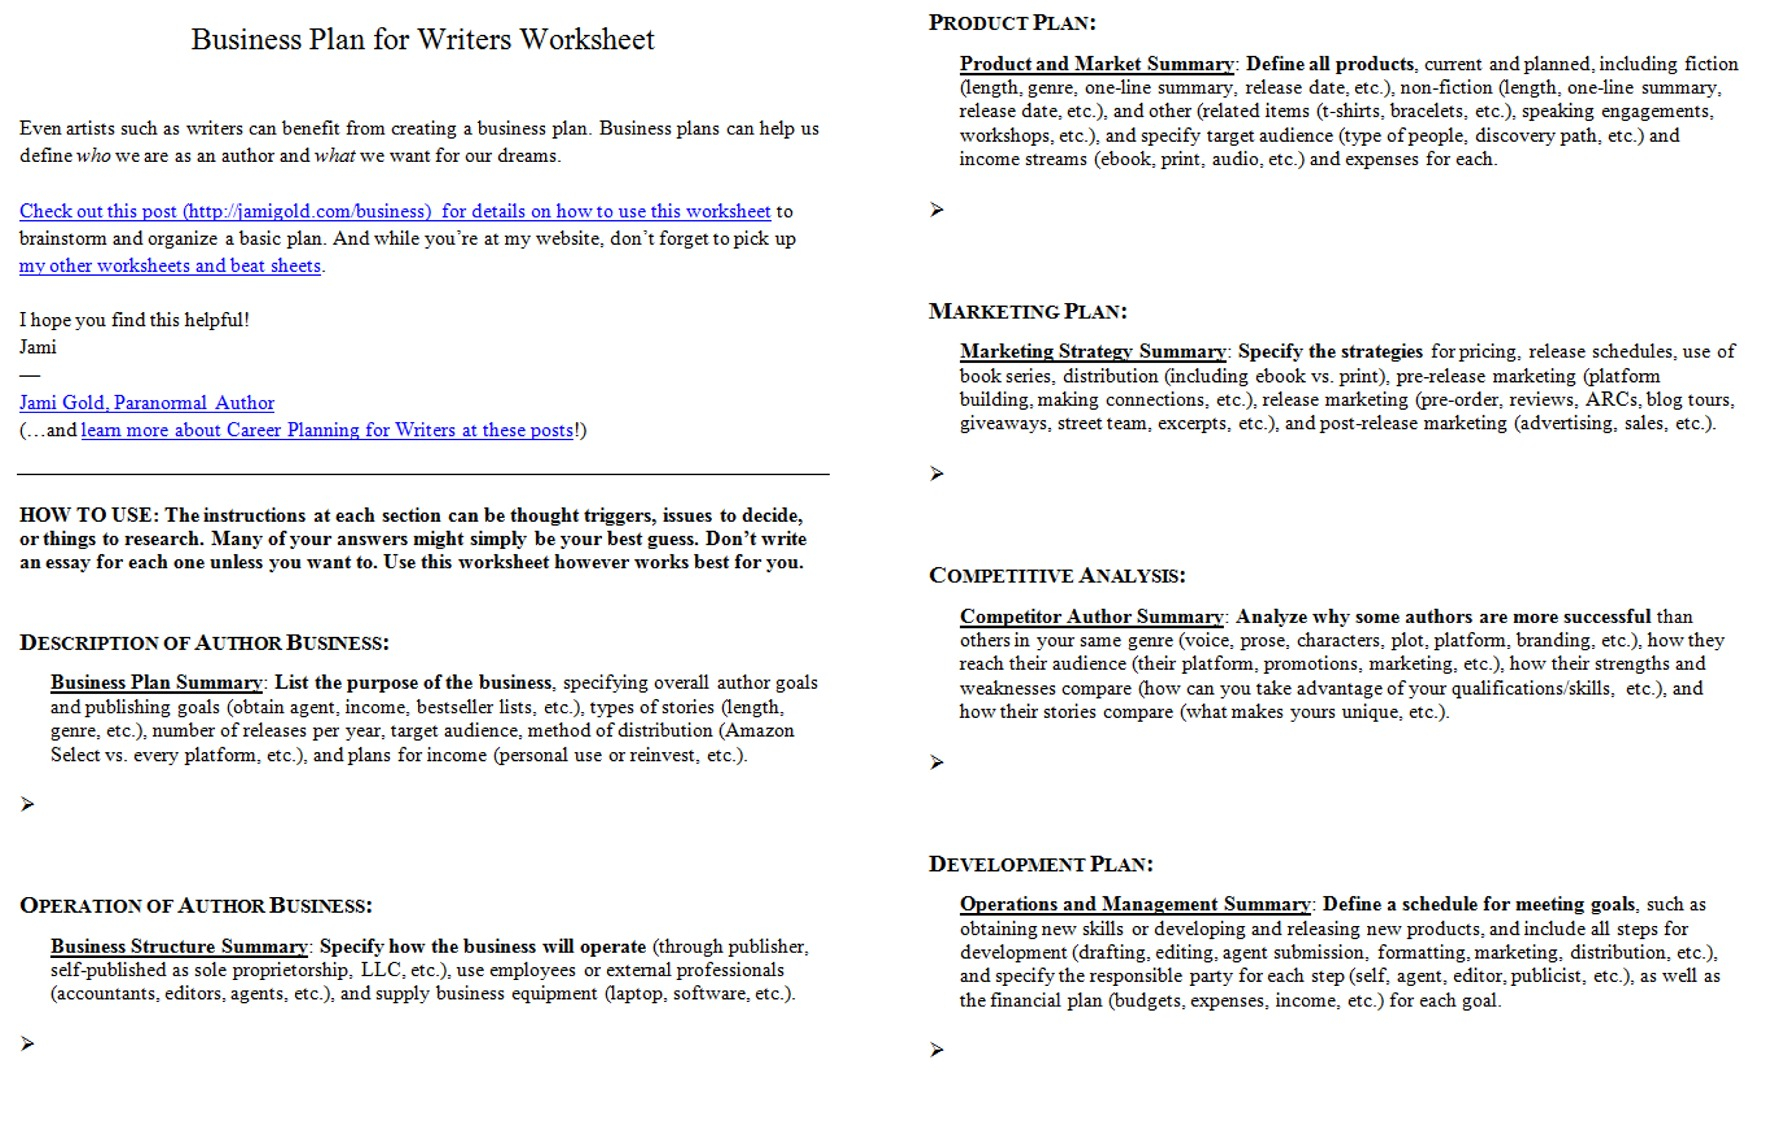 Aldiablosus  Unique Worksheets For Writers  Jami Gold Paranormal Author With Exquisite Screen Shot Of Both Pages Of The Business Plan For Writers Worksheet With Breathtaking Printable Worksheets For Th Grade Also Teddy Bear Worksheets In Addition Rd Grade Sentence Correction Worksheets And Eftps Business Phone Worksheet As Well As Real Numbers And The Number Line Worksheet Additionally Self Employment Worksheet From Jamigoldcom With Aldiablosus  Exquisite Worksheets For Writers  Jami Gold Paranormal Author With Breathtaking Screen Shot Of Both Pages Of The Business Plan For Writers Worksheet And Unique Printable Worksheets For Th Grade Also Teddy Bear Worksheets In Addition Rd Grade Sentence Correction Worksheets From Jamigoldcom